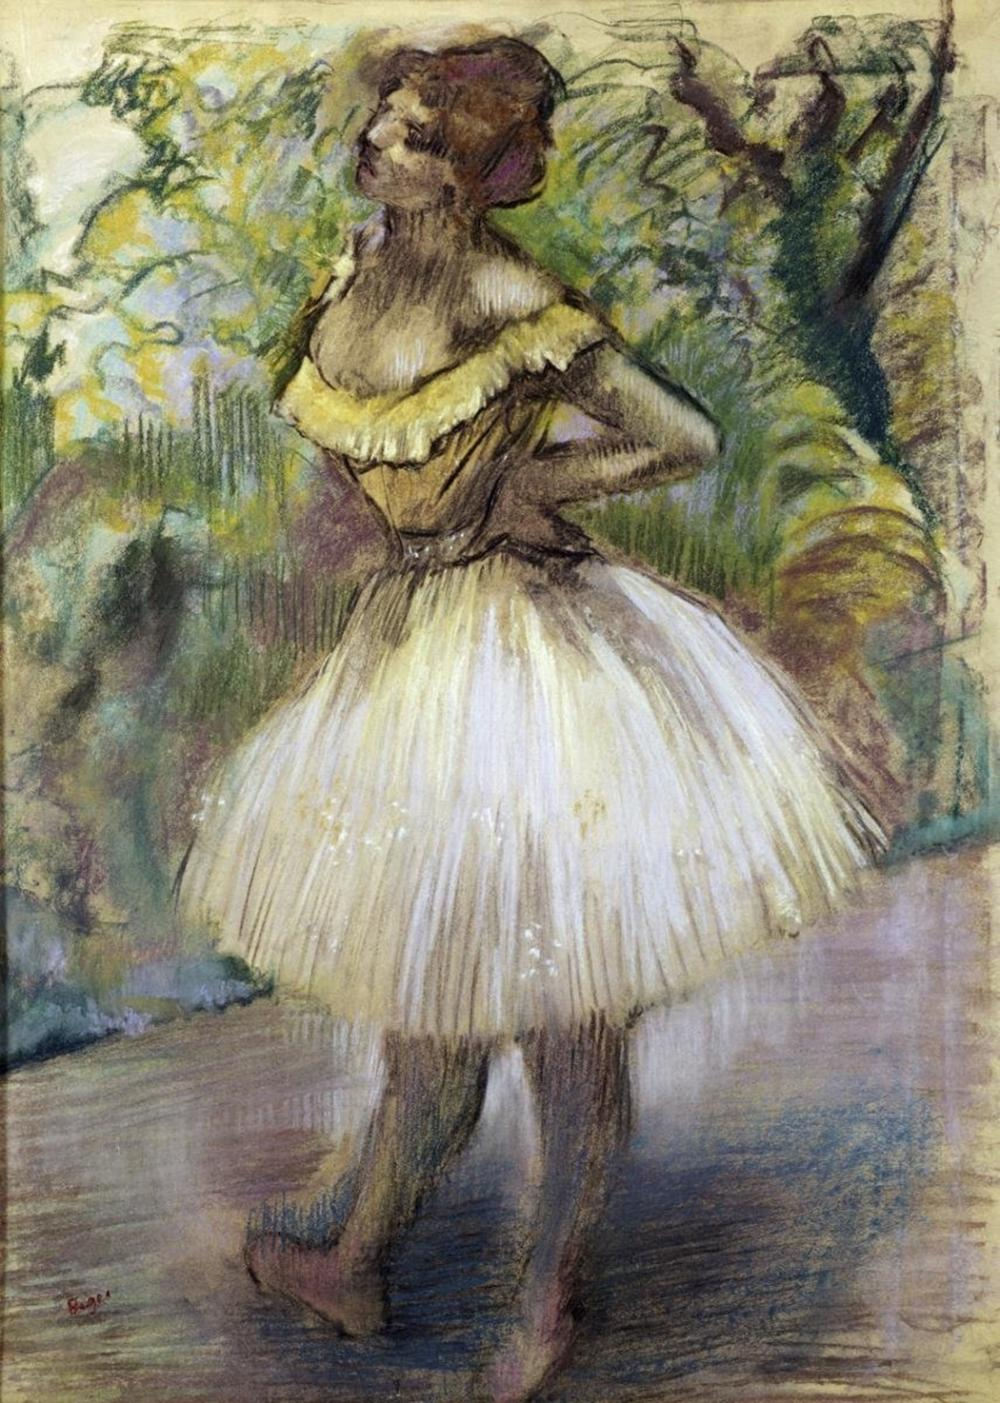 EDGAR DEGAS - DANCER IN YELLOW